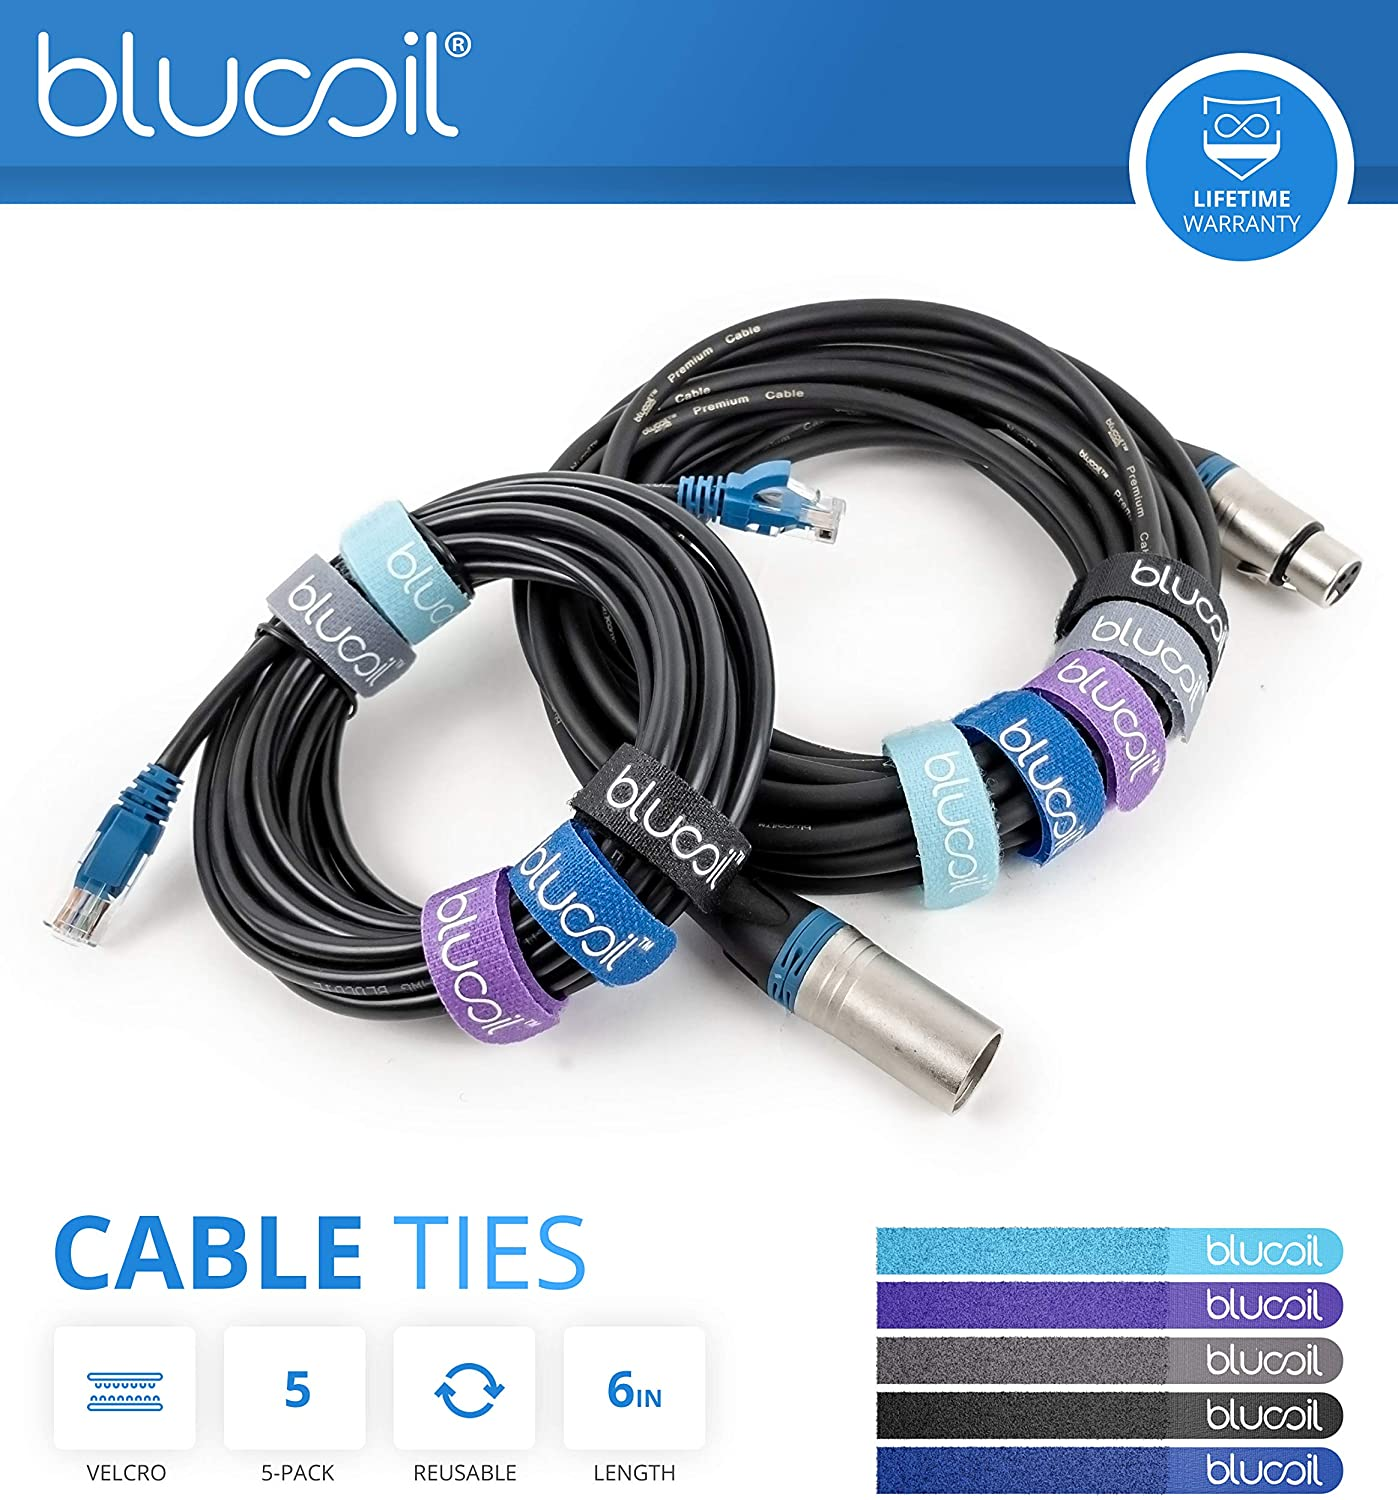 LR Baggs Venue DI Acoustic Guitar Preamp Bundle with Blucoil Slim 9V Power Supply AC Adapter 1//4 2x Patch Cables and 5x Cable Ties 10-FT Balanced XLR Cable 10 Straight Instrument Cable